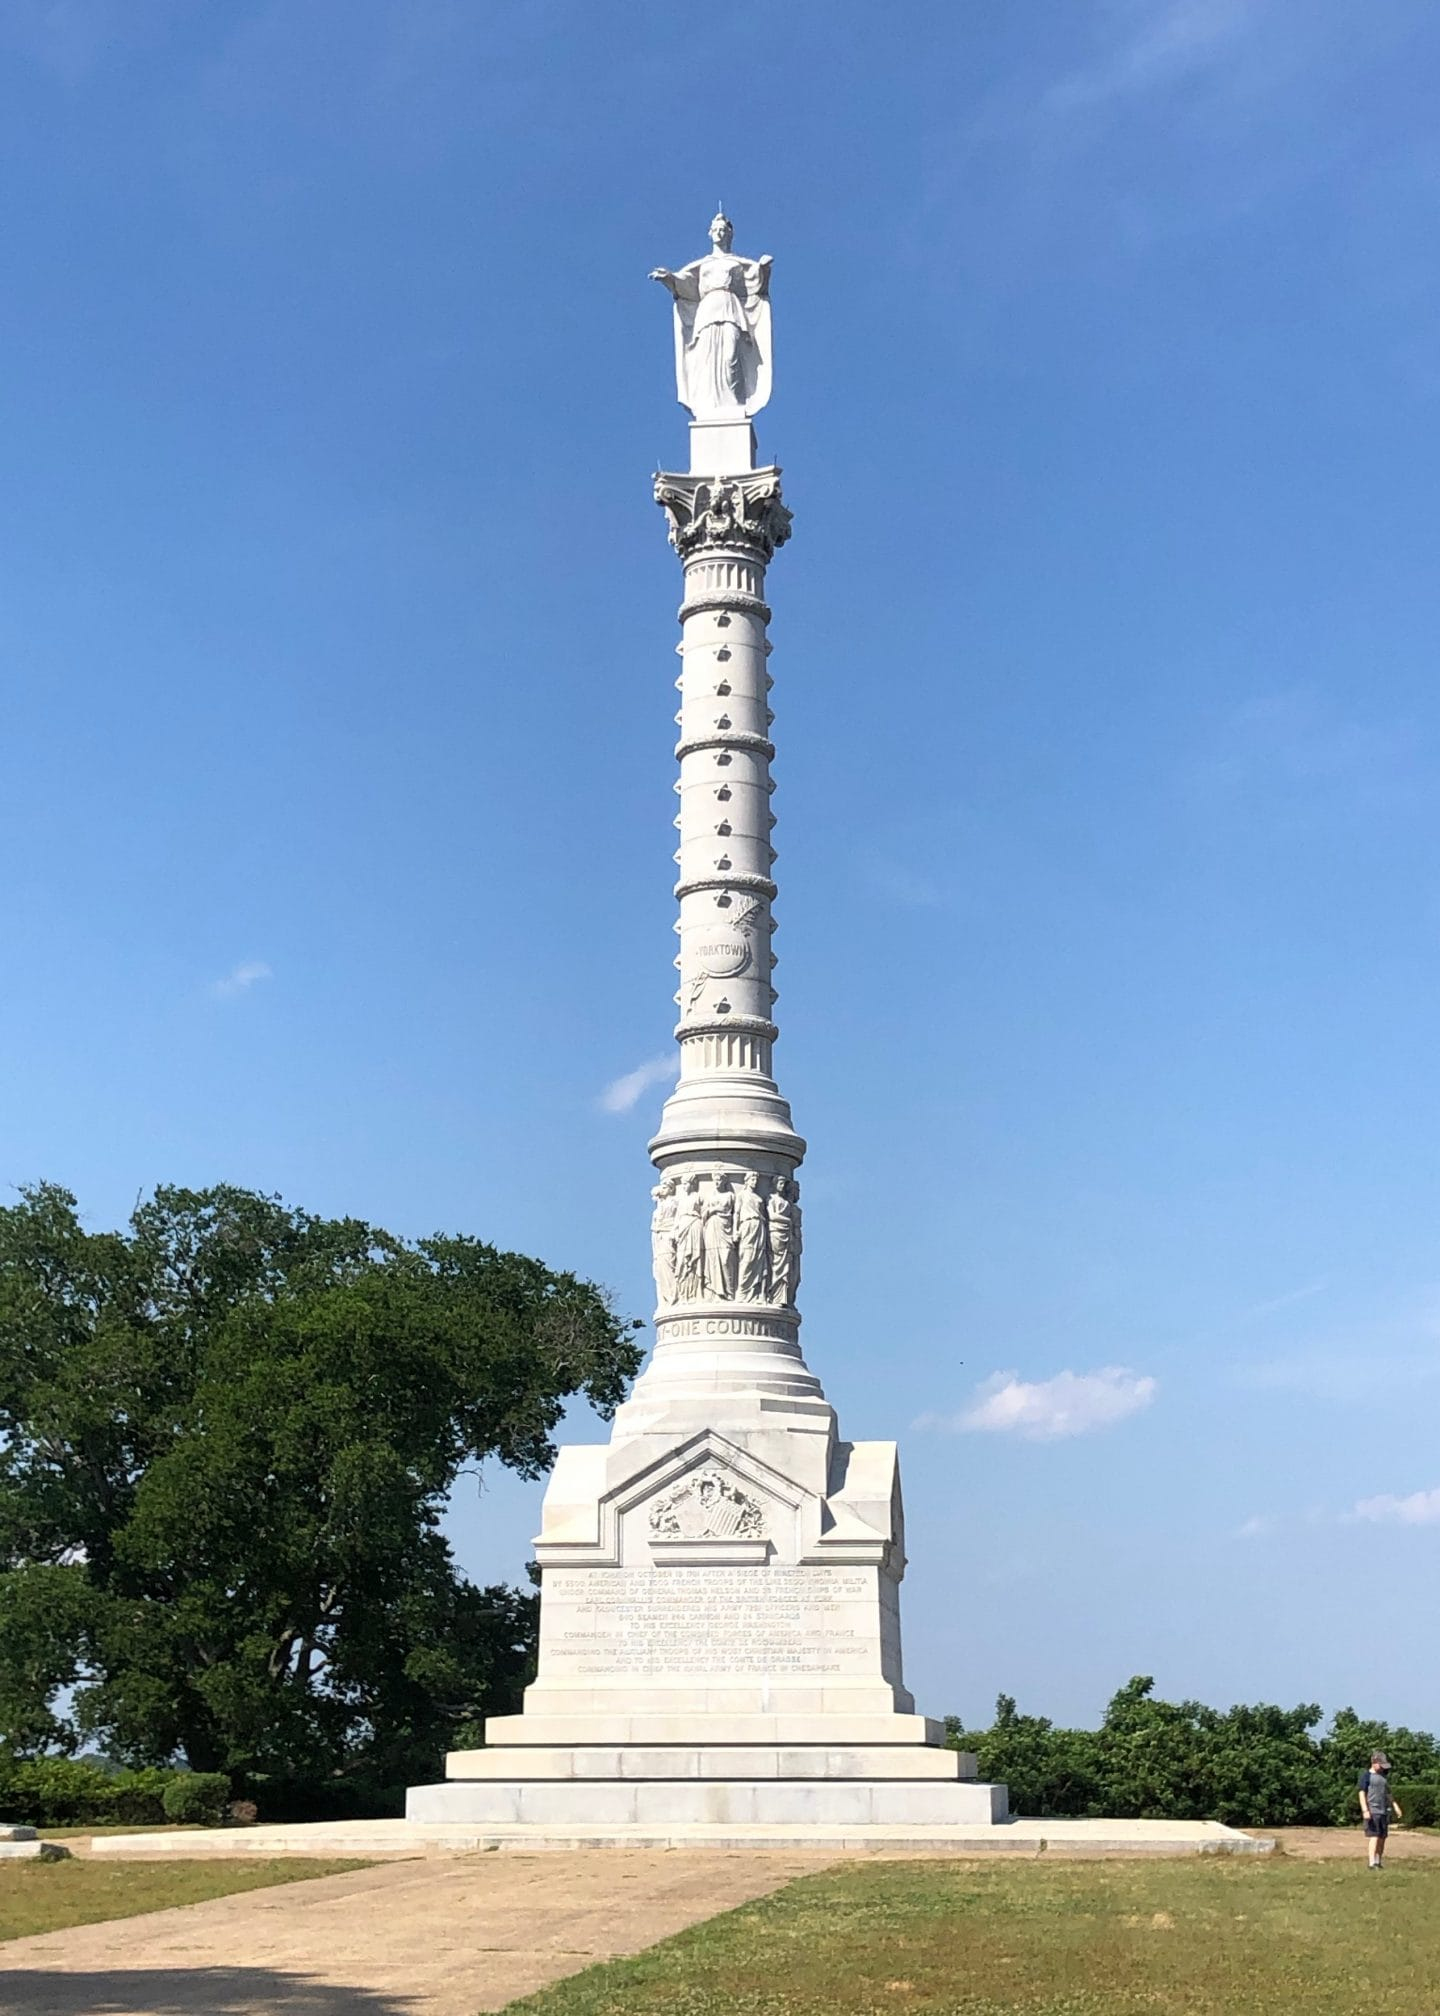 Yorktown victory monument and beach